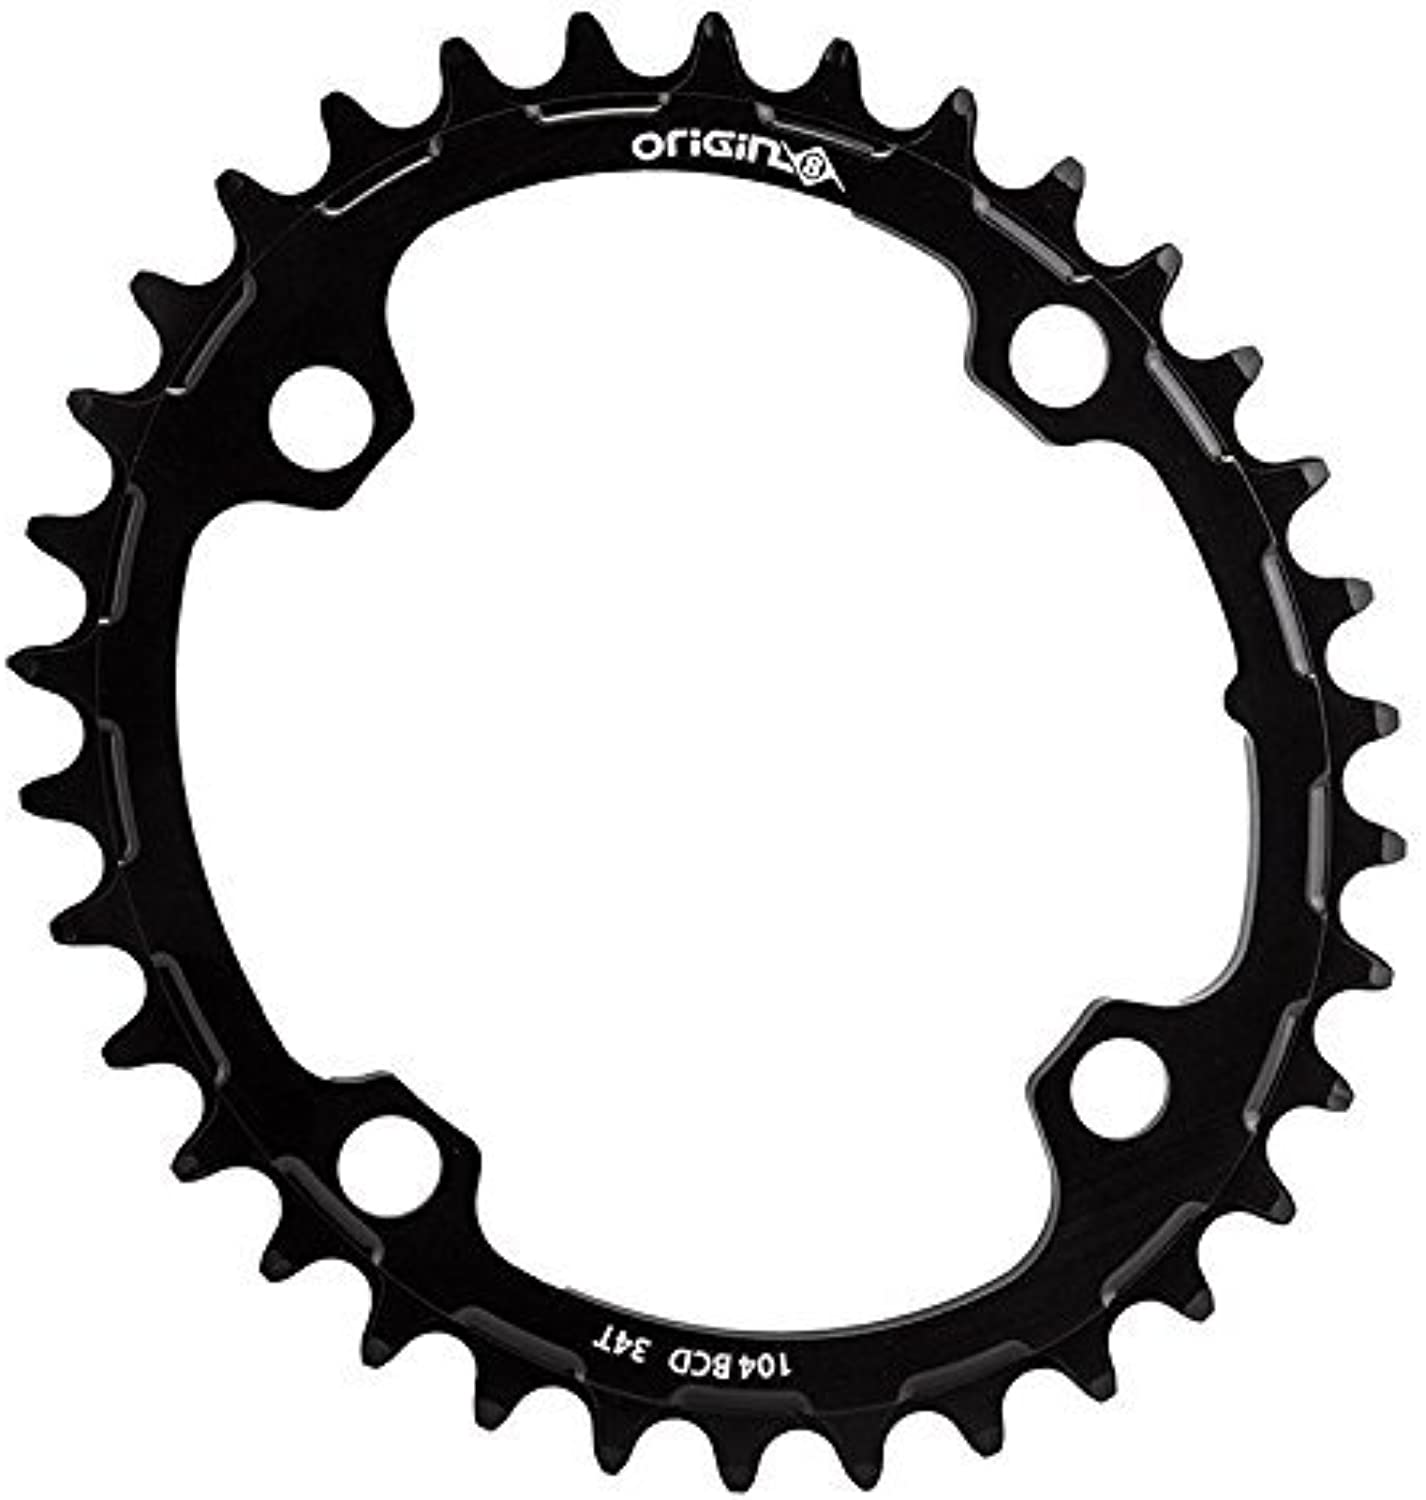 Origin8 Holdfast Oval 1x Chainring, 104mm BCD, 34t by Origin8